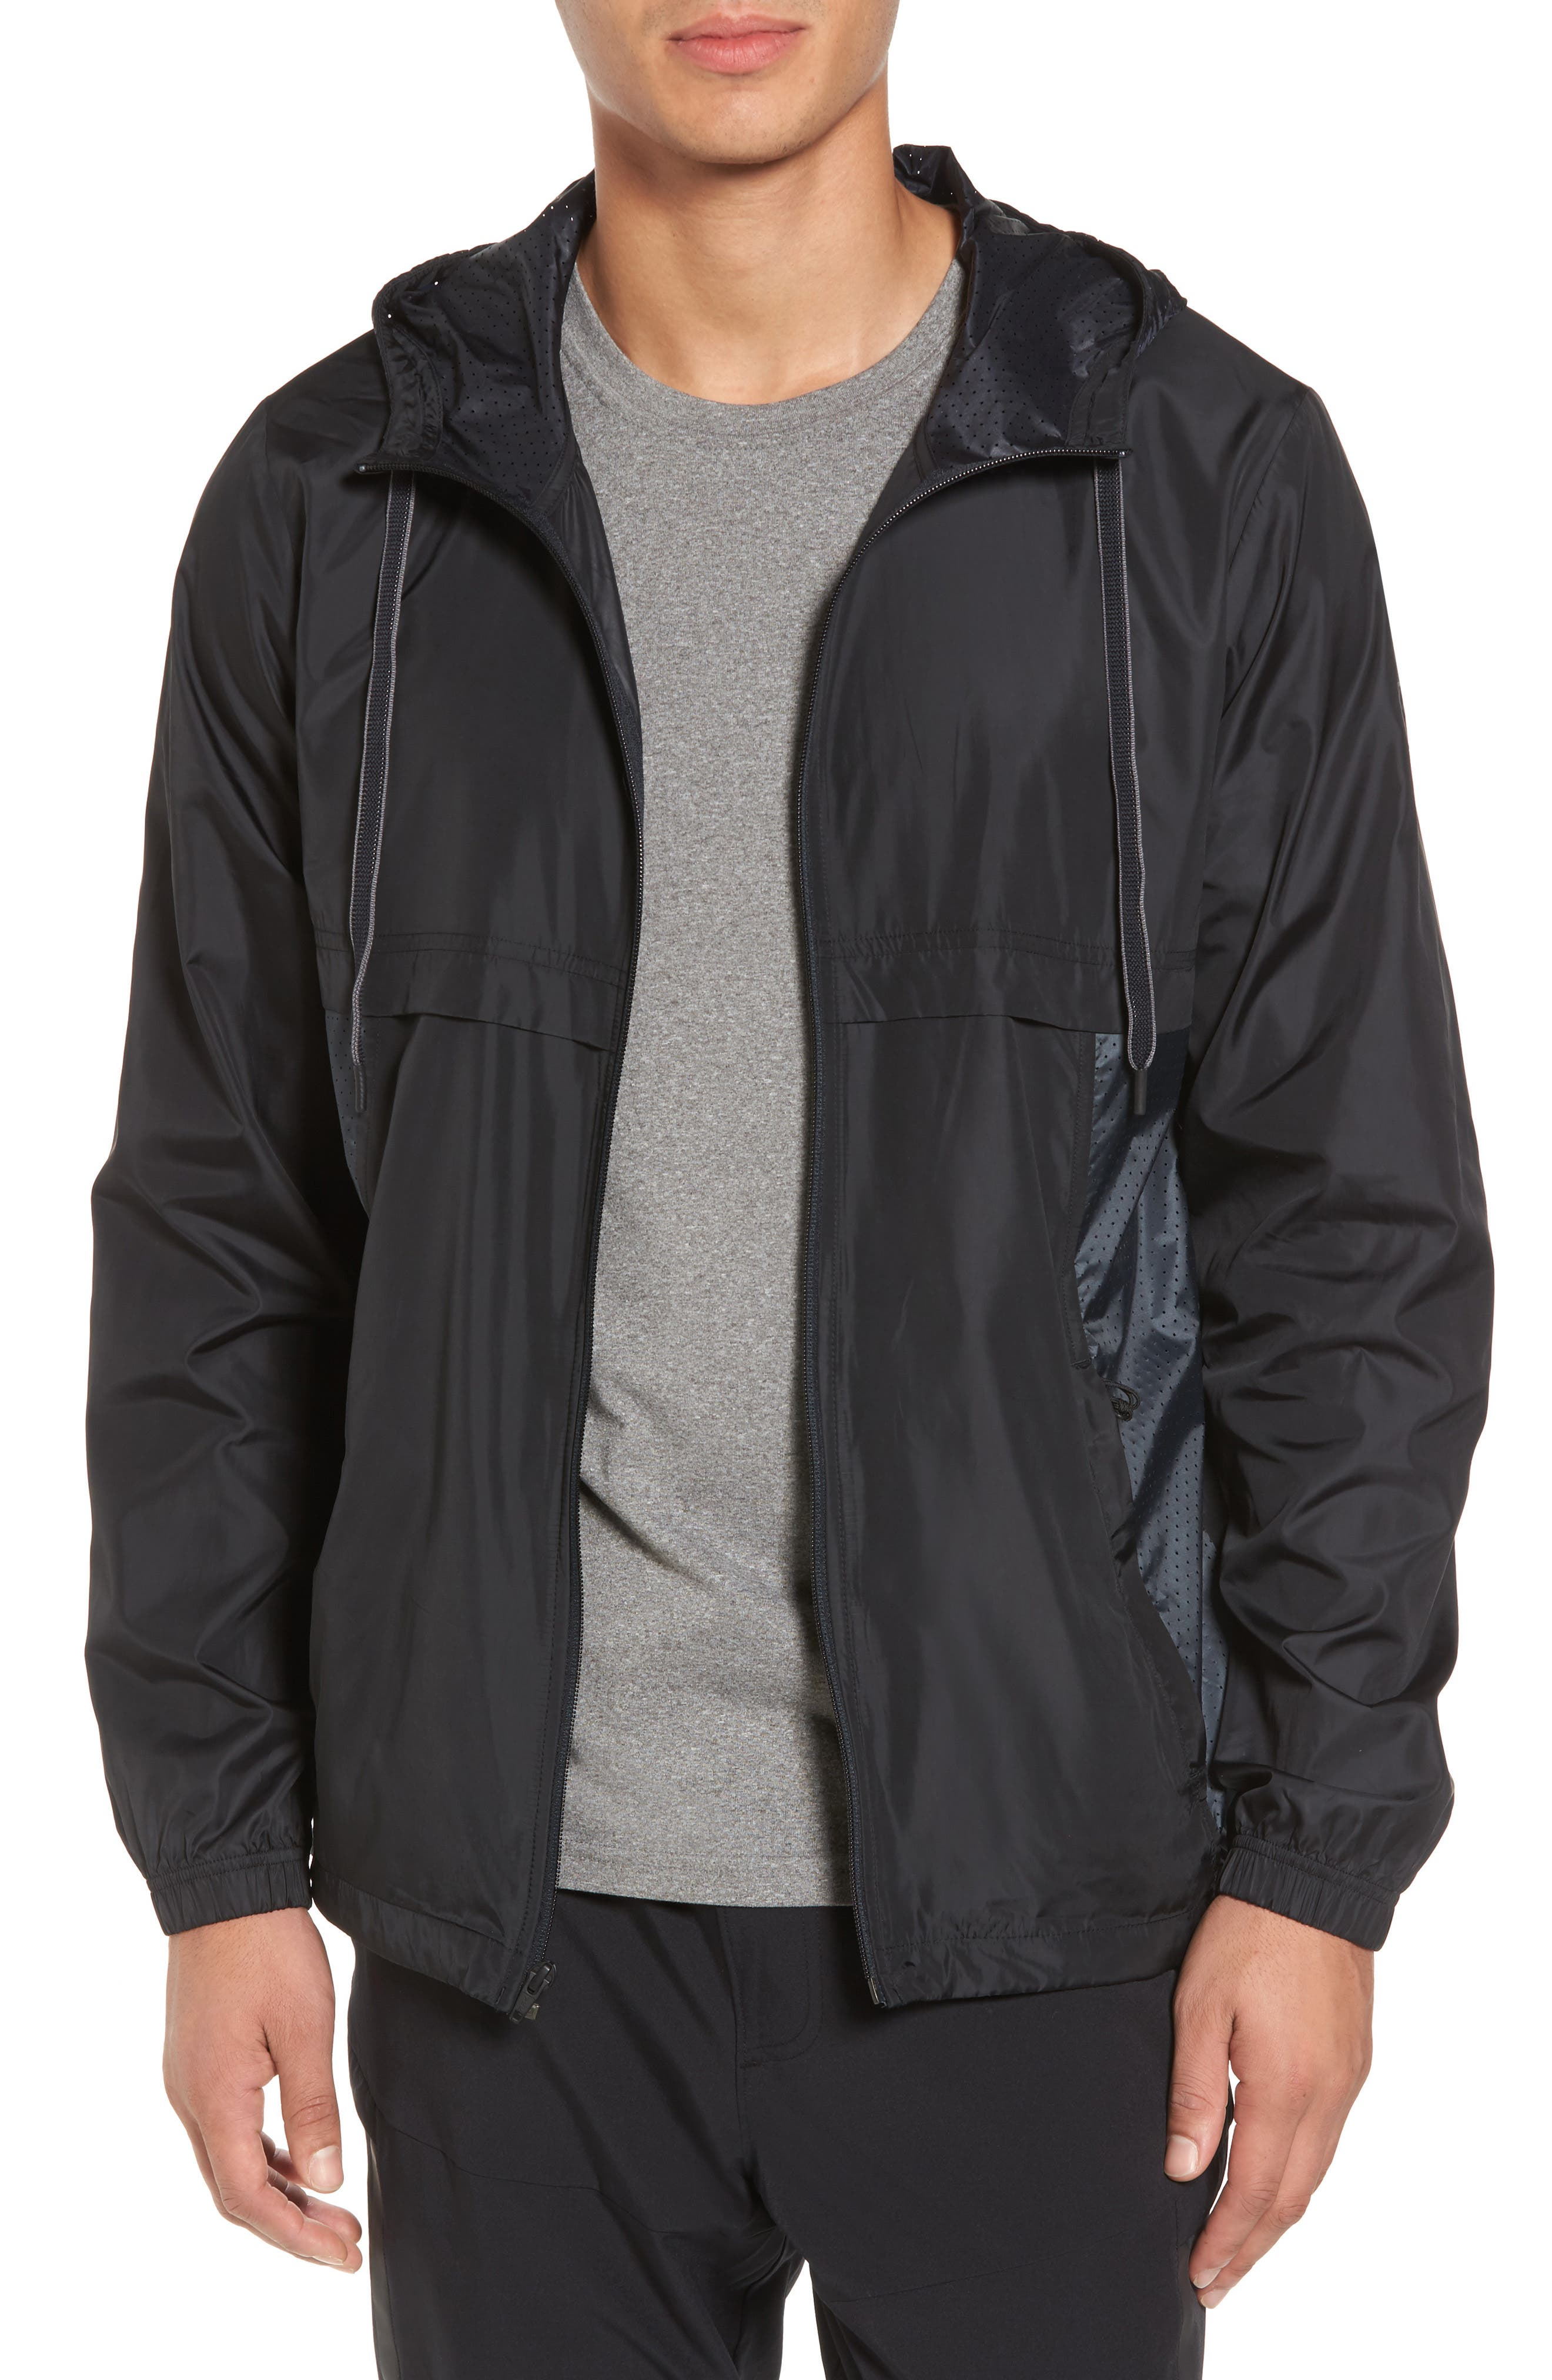 Sportstyle Windbreaker,                             Main thumbnail 1, color,                             Black / Overcast Grey